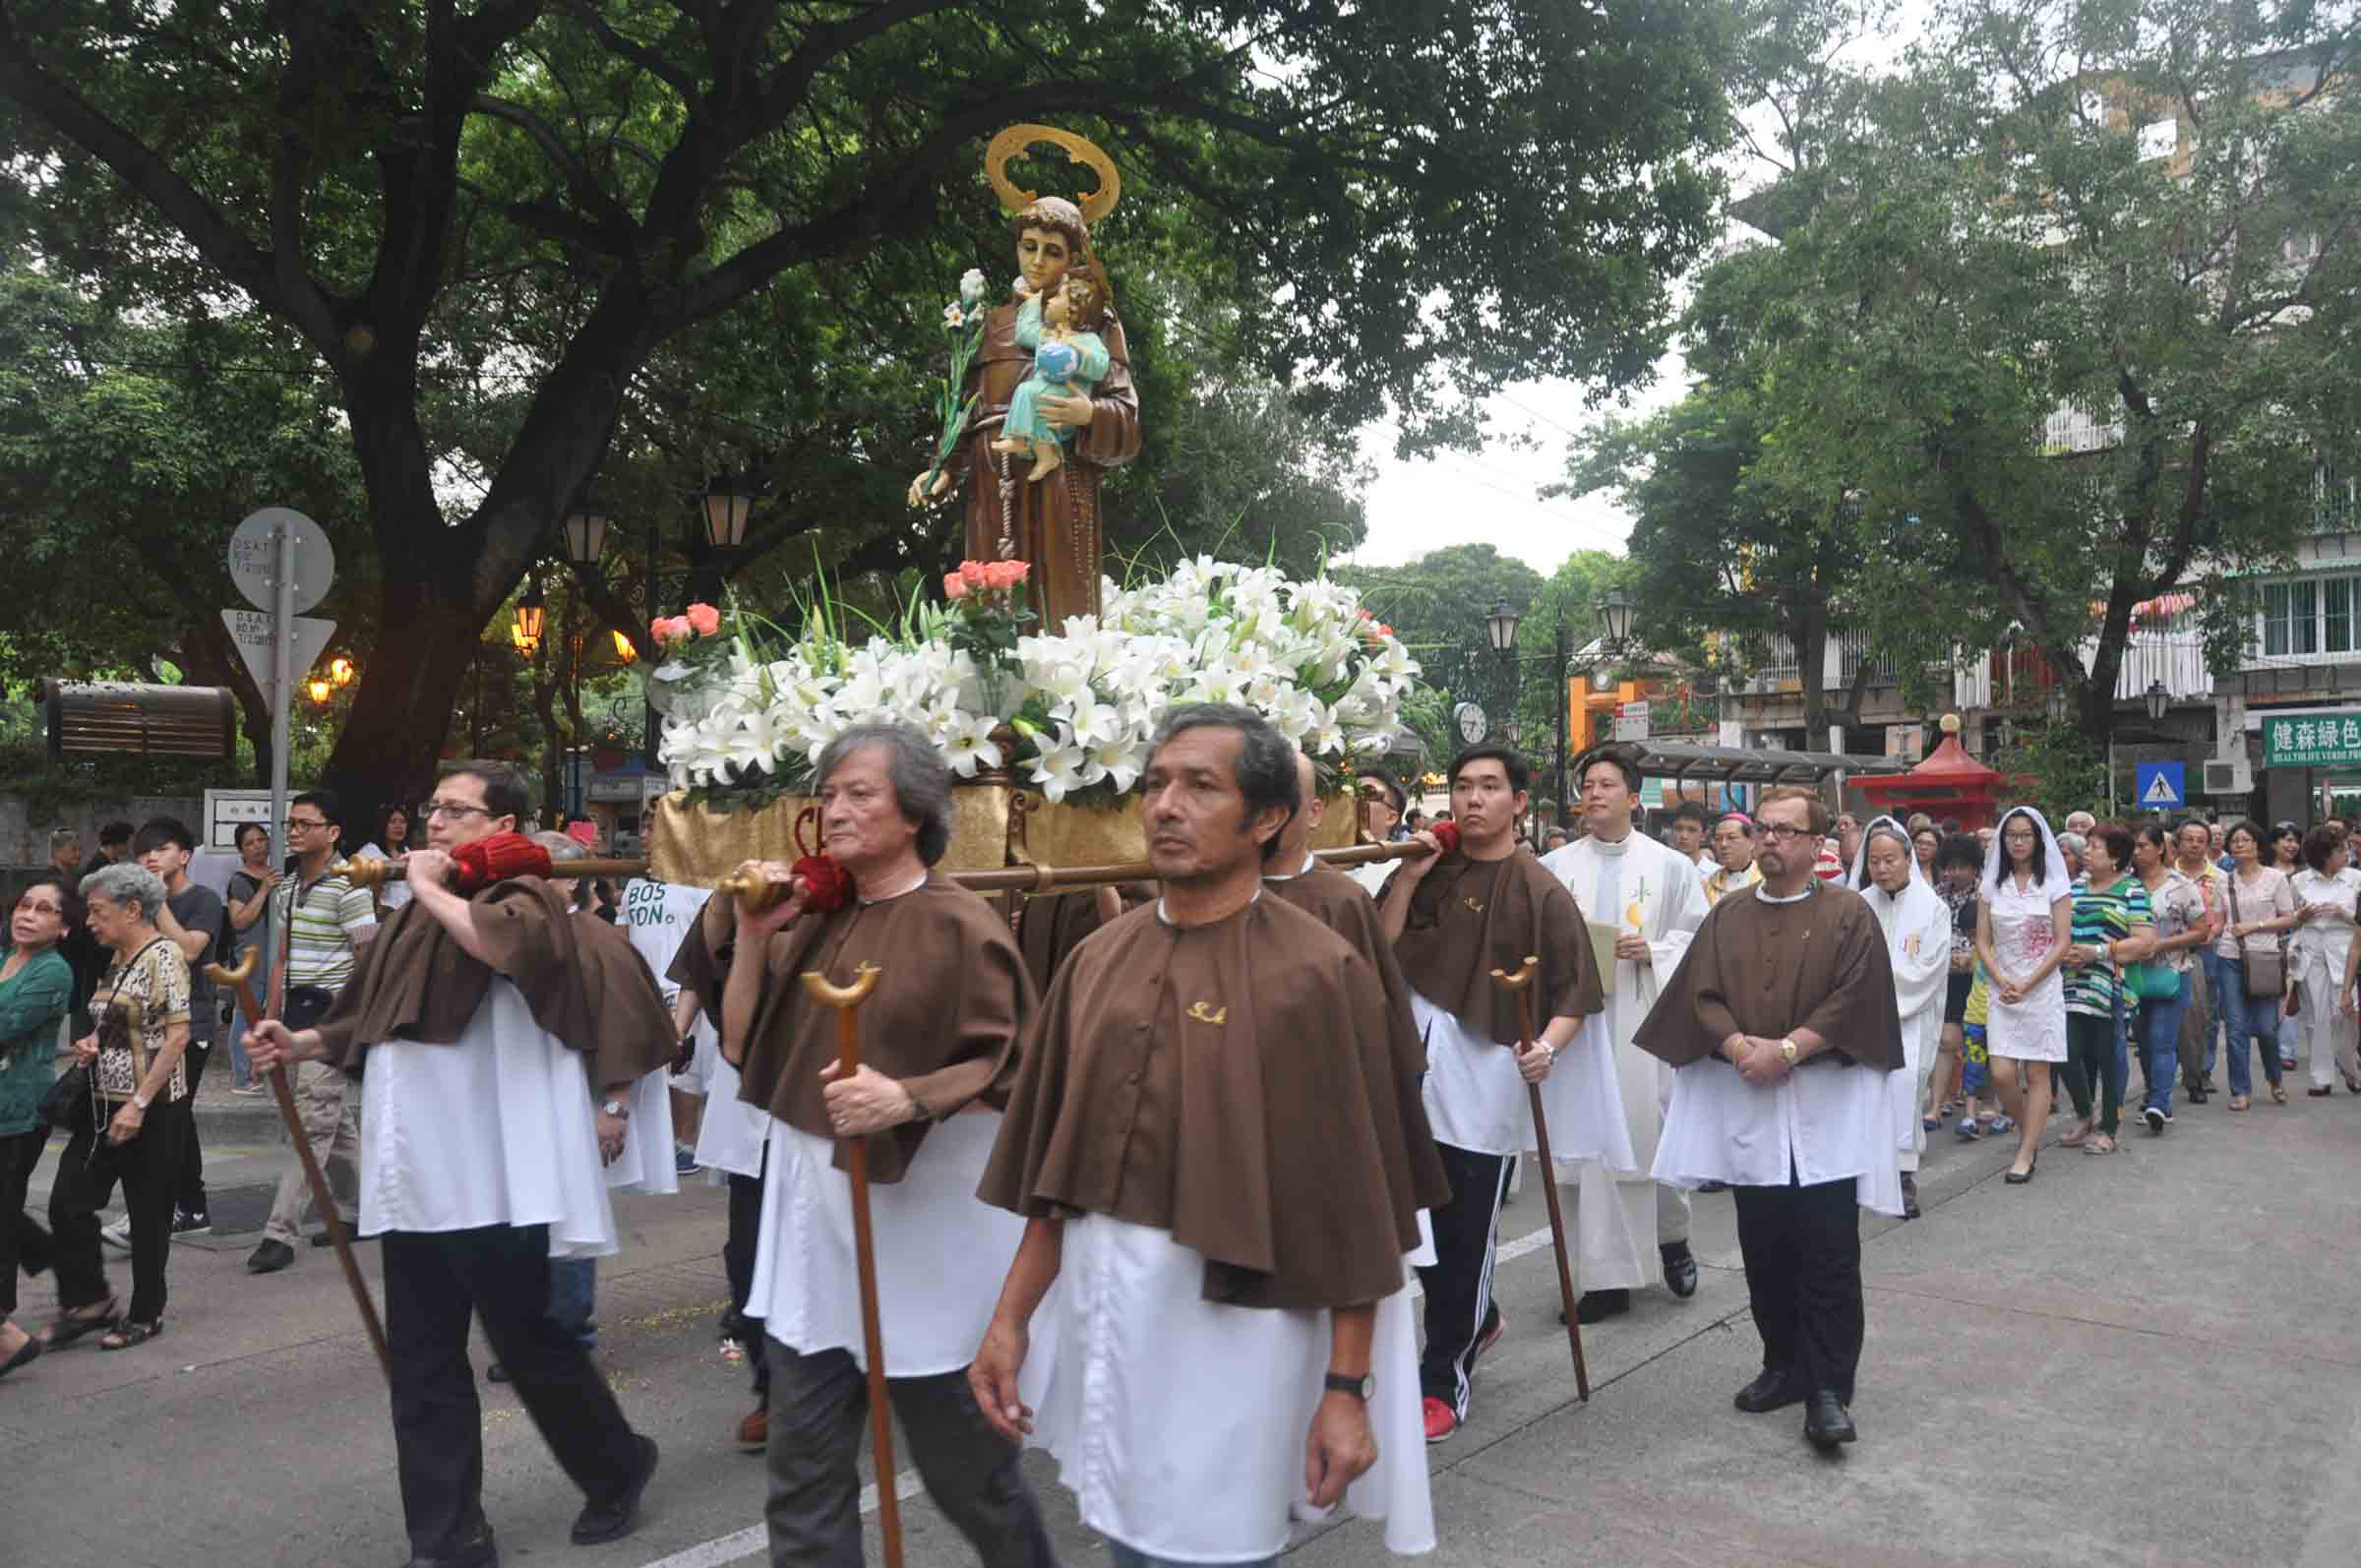 The St. Anthony Procession parading around the traffic circle